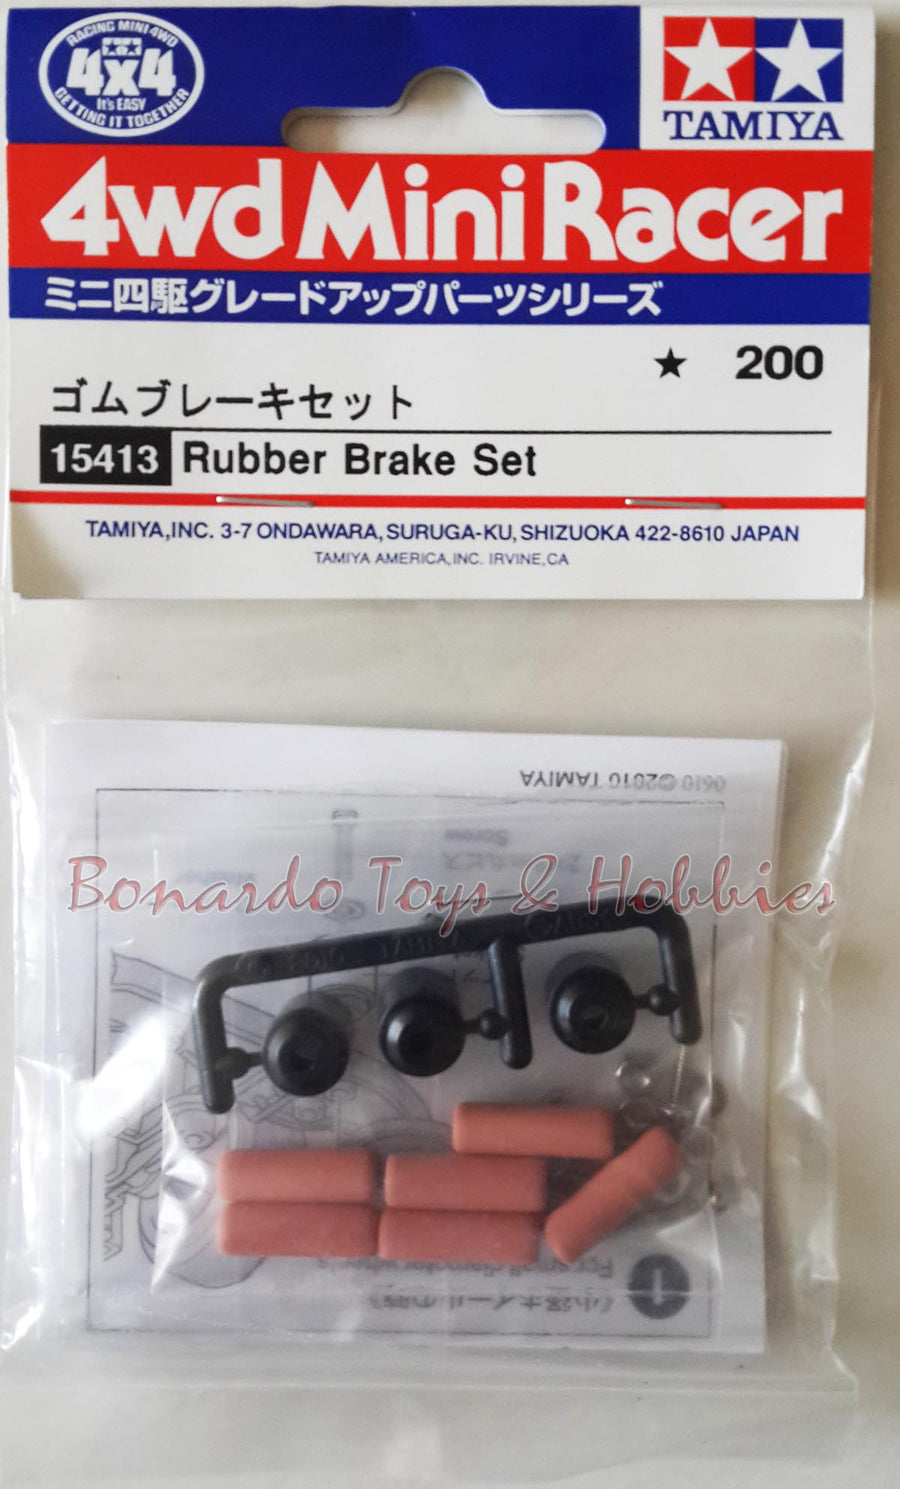 Rubber Brake Set